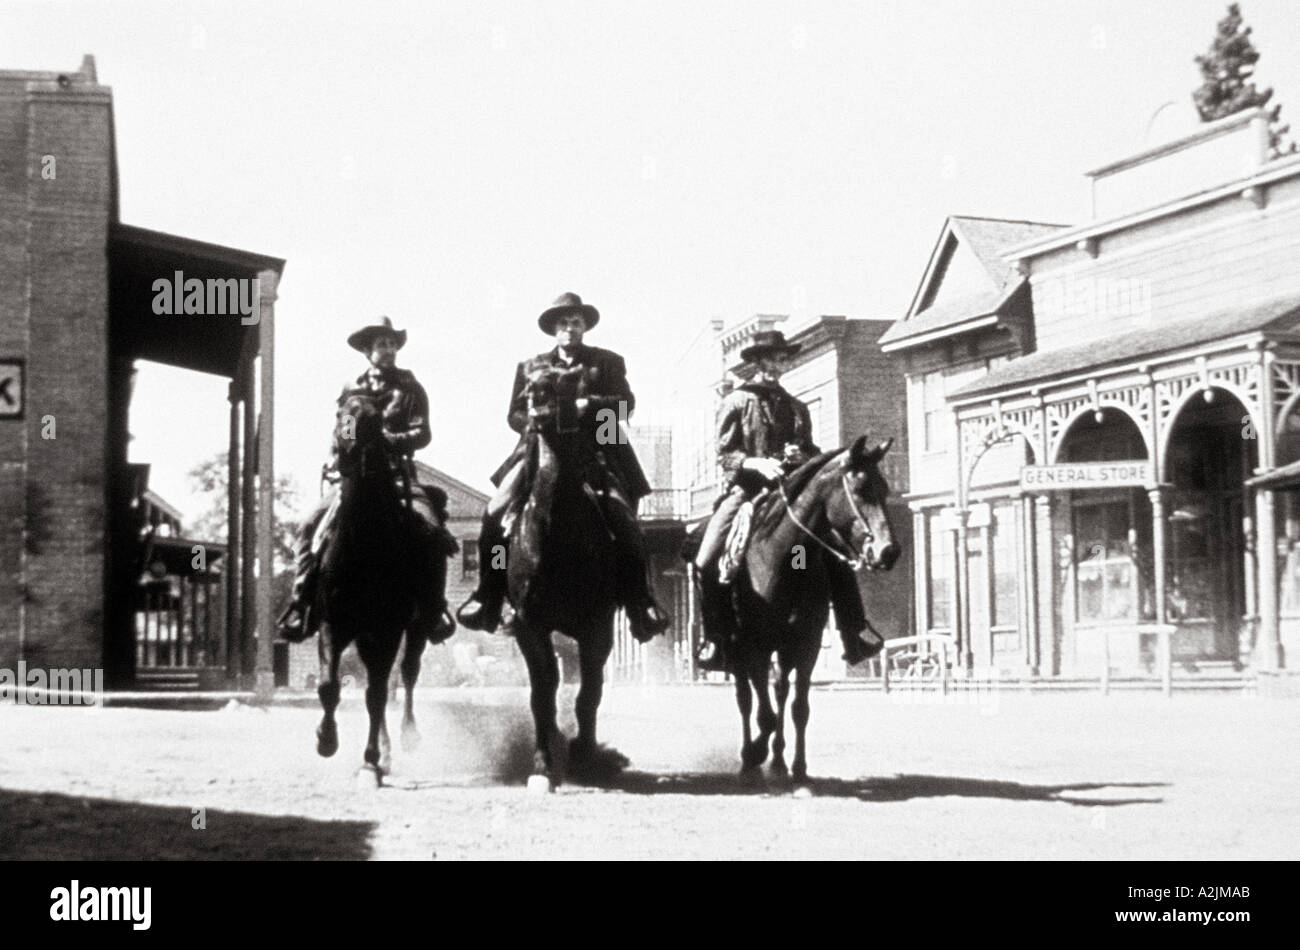 HIGH NOON classic 1952 Western film - Stock Image